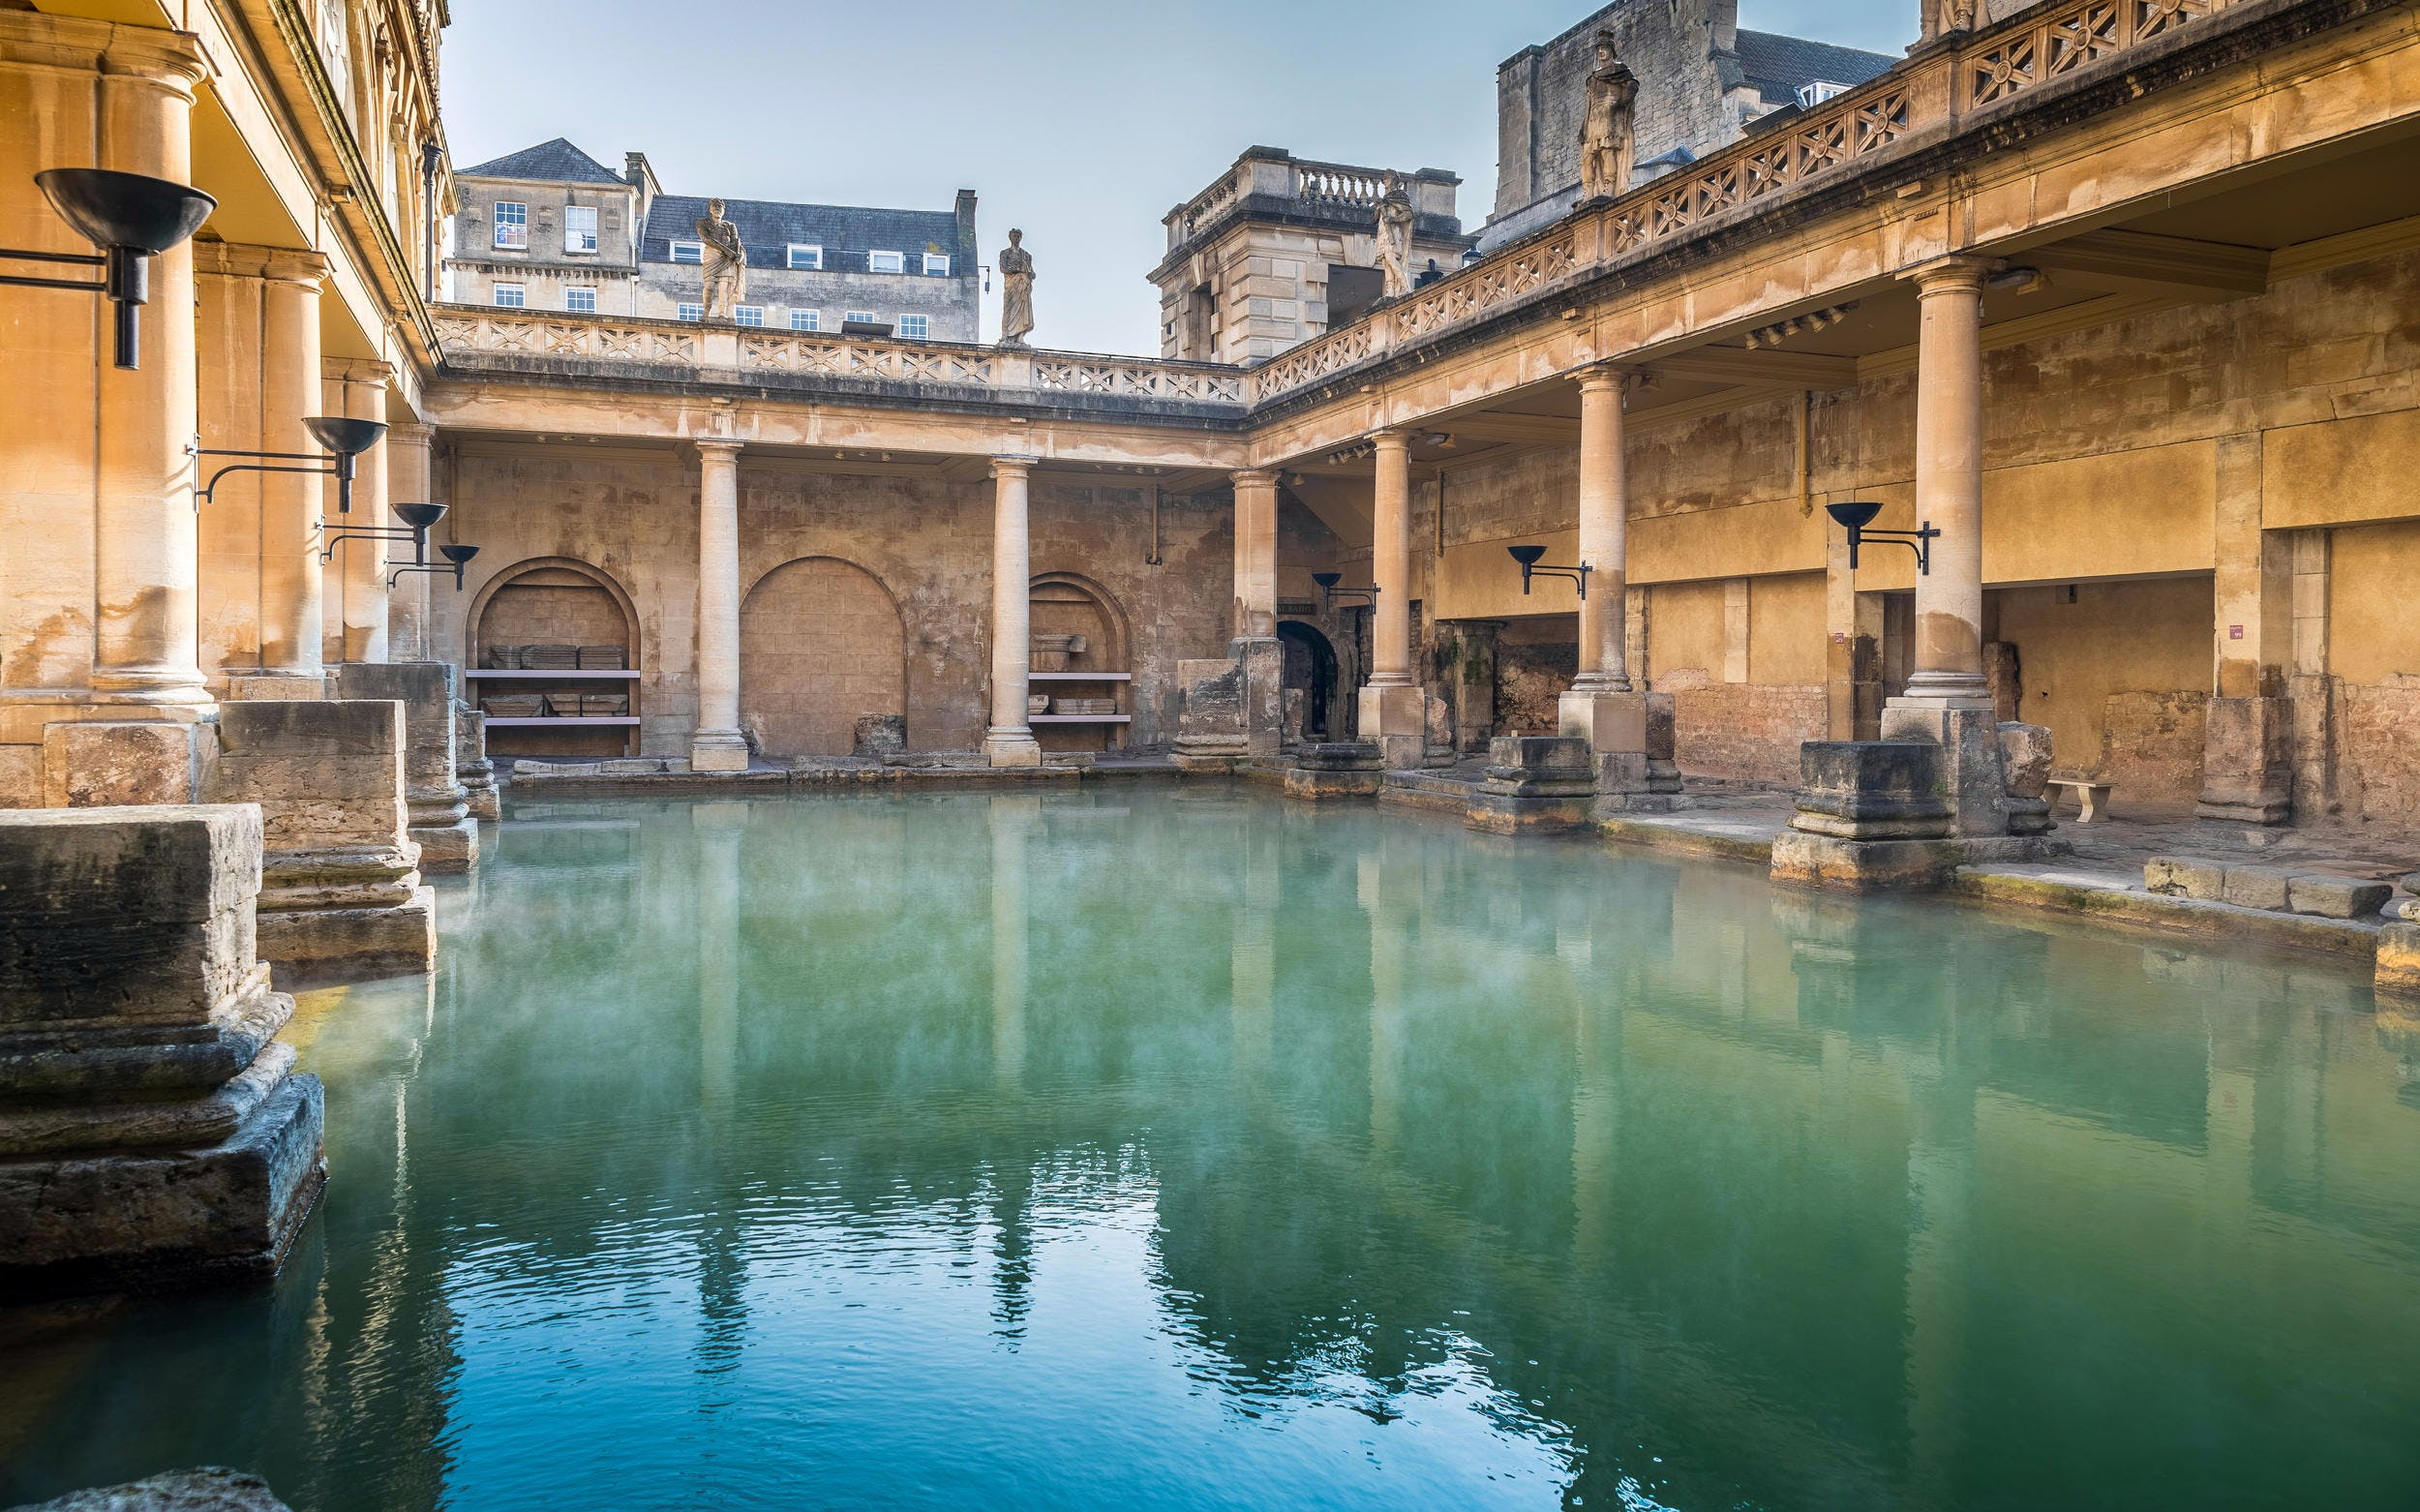 Best Day Trips from London - Windsor, Stonehenge & Bath Tour from London